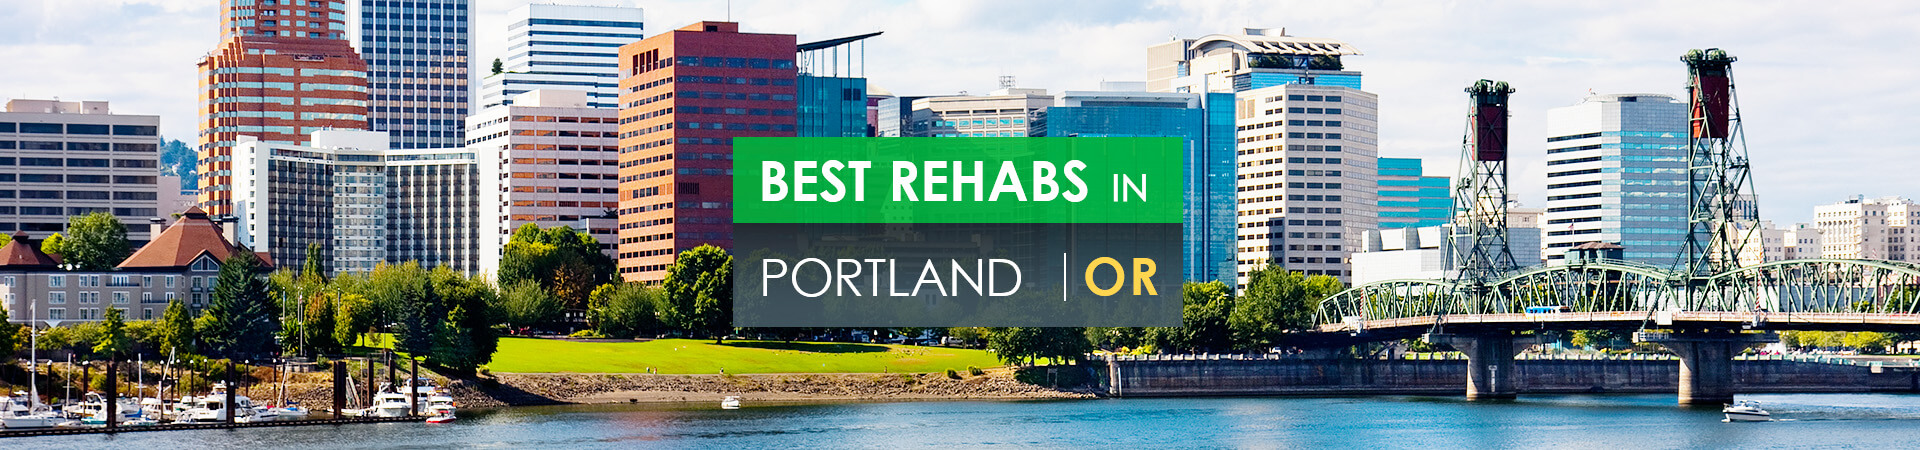 Best rehabs in Portland, OR